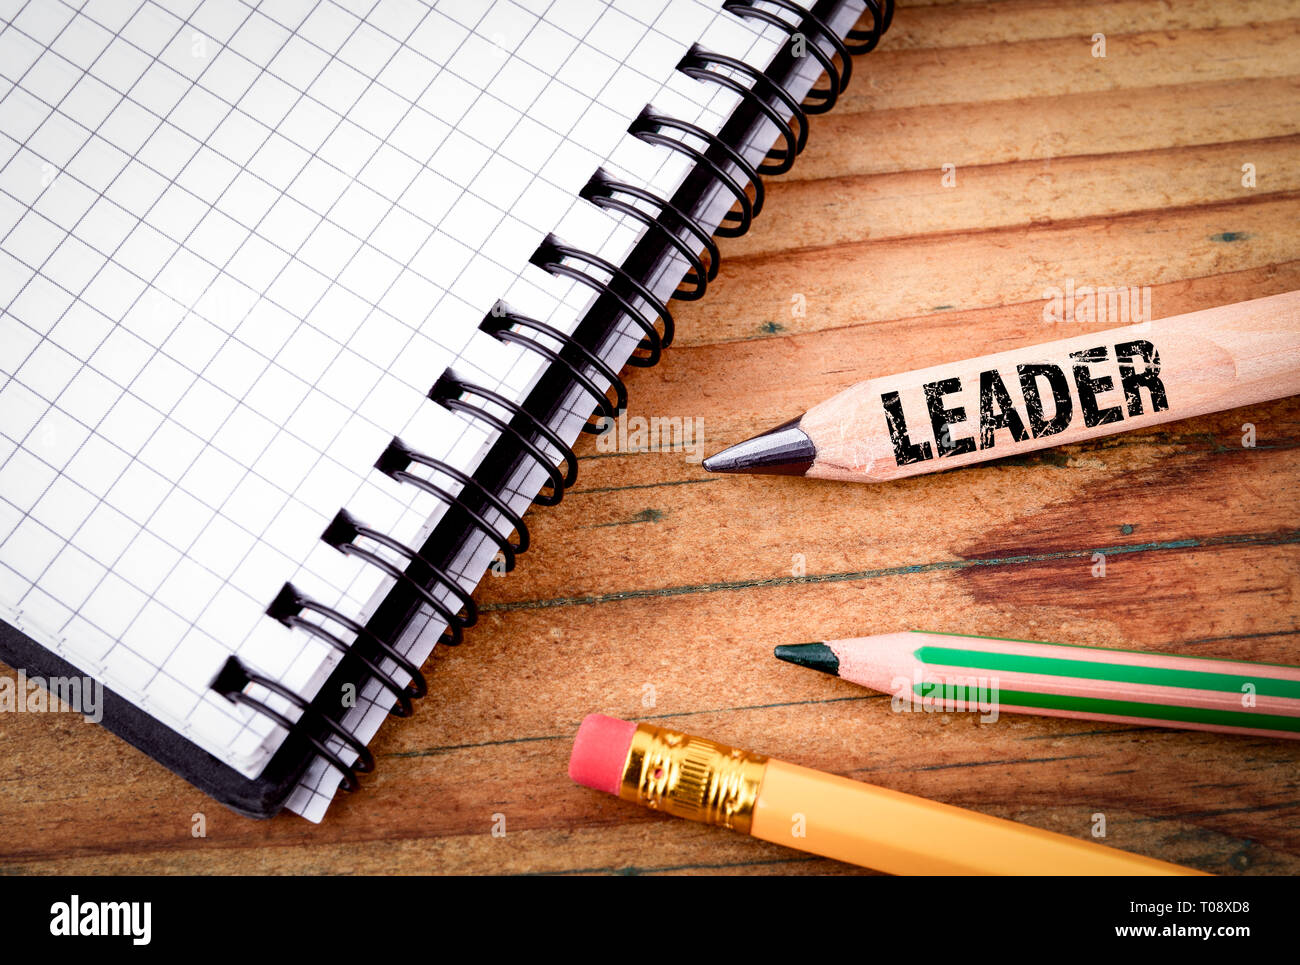 LEADER text on pencil. Business success concept Stock Photo